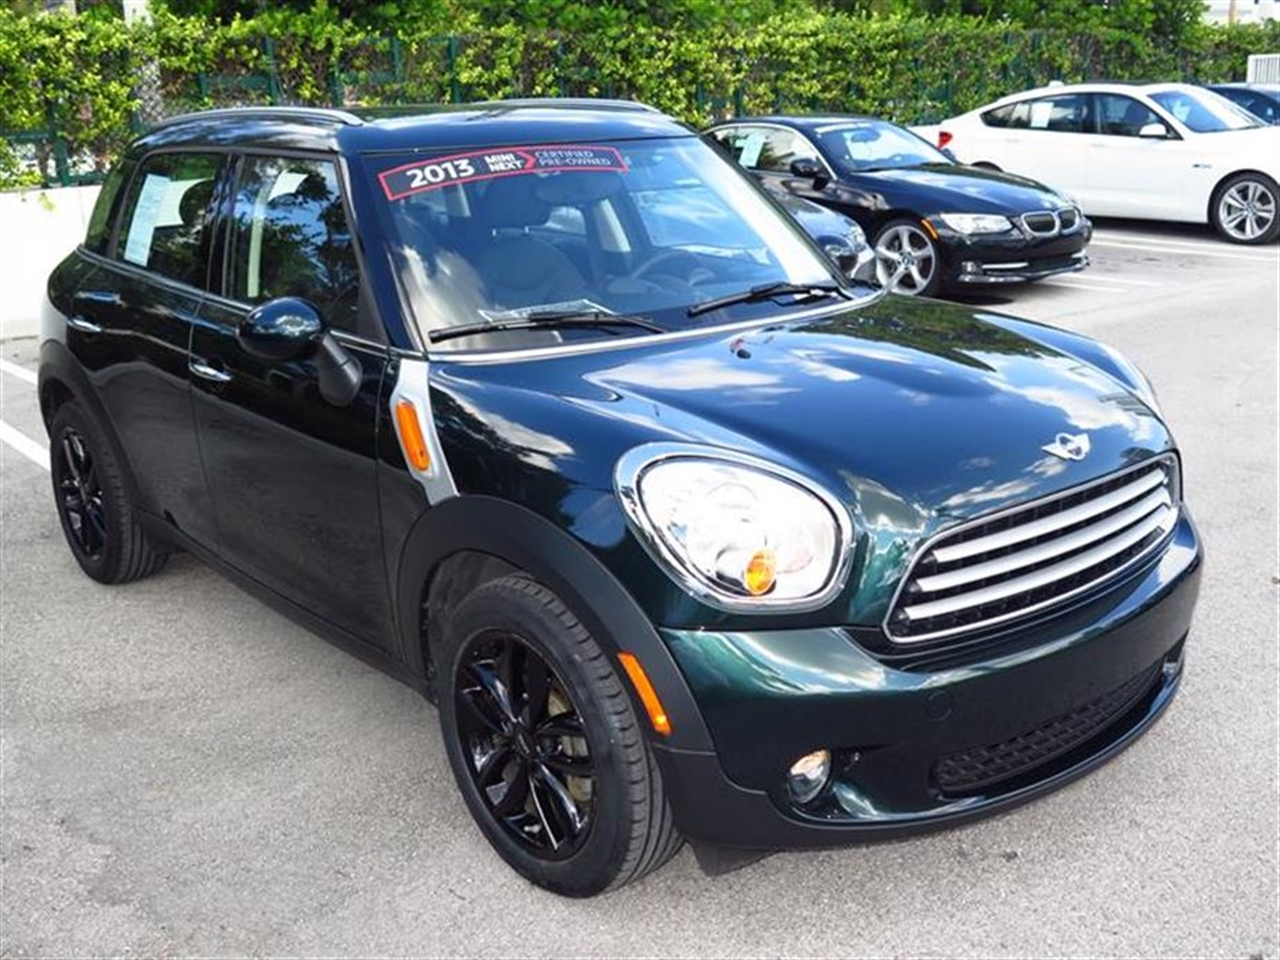 2013 MINI COOPER COUNTRYMAN FWD 4dr 14467 miles 2 front cup holders 3 12V pwr outlets 3 re